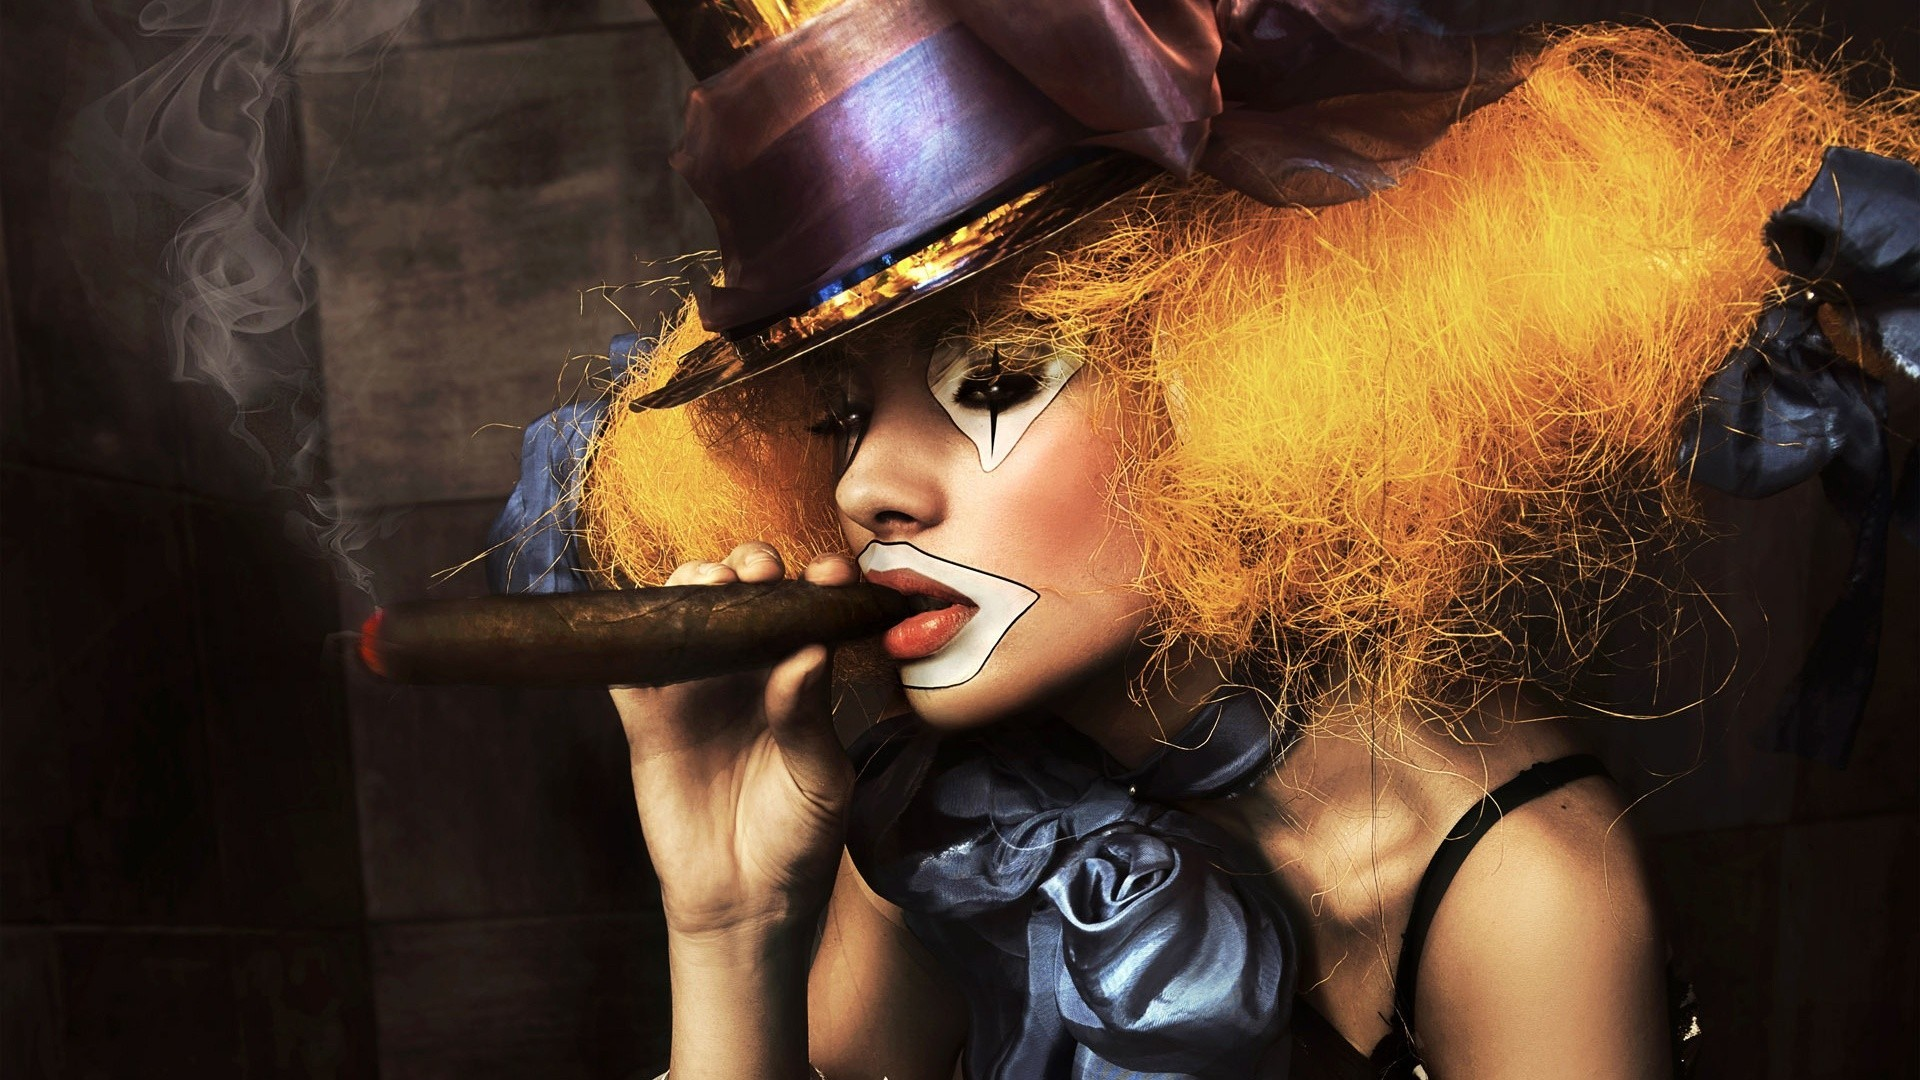 woman clowns cigars HD Wallpaper